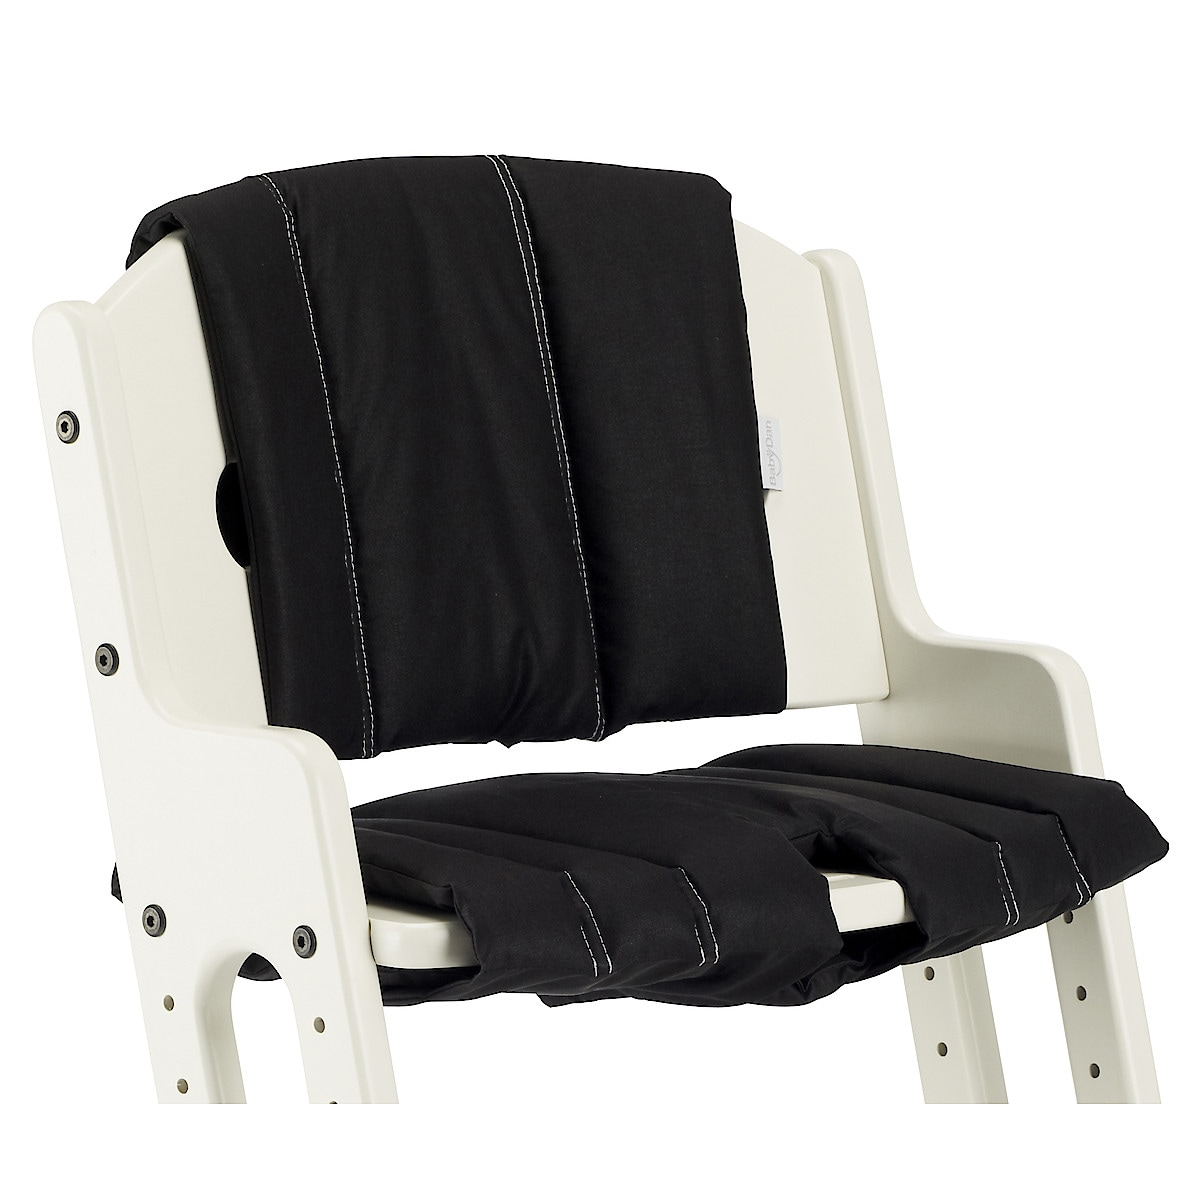 BabyDan Comfort High Chair Cushion, Black